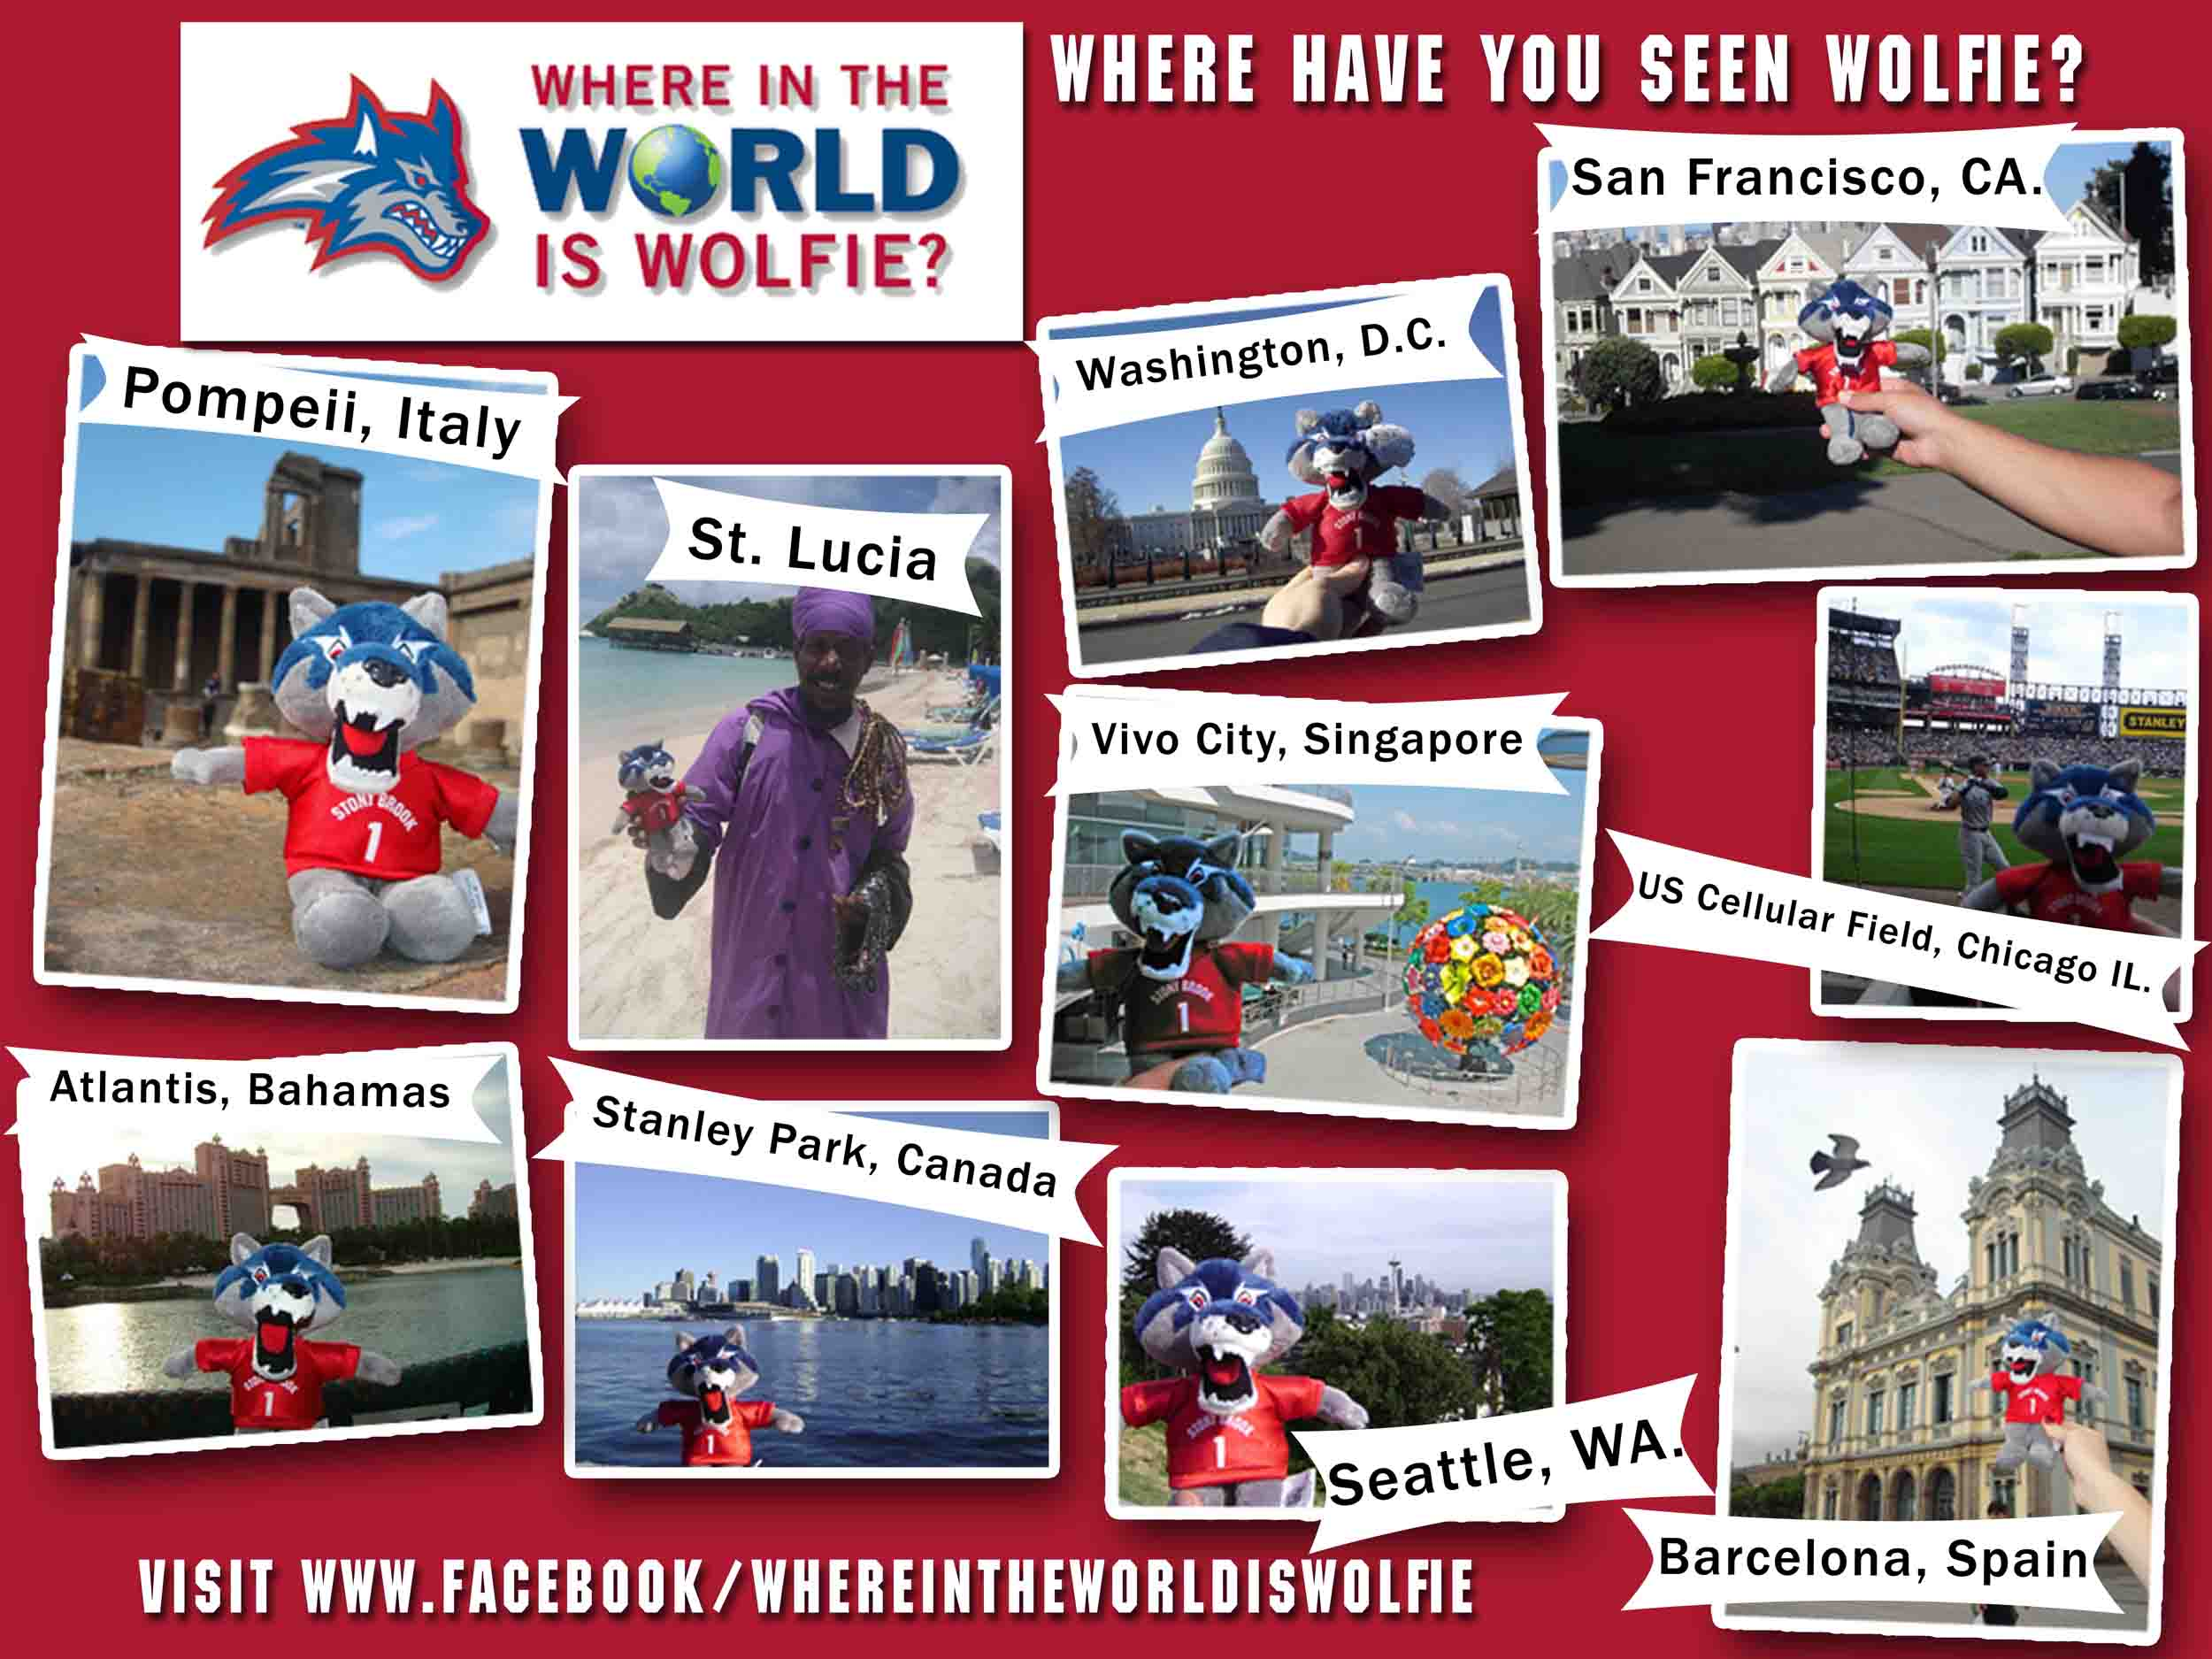 Where in the world is wolfie collage poster final copy4